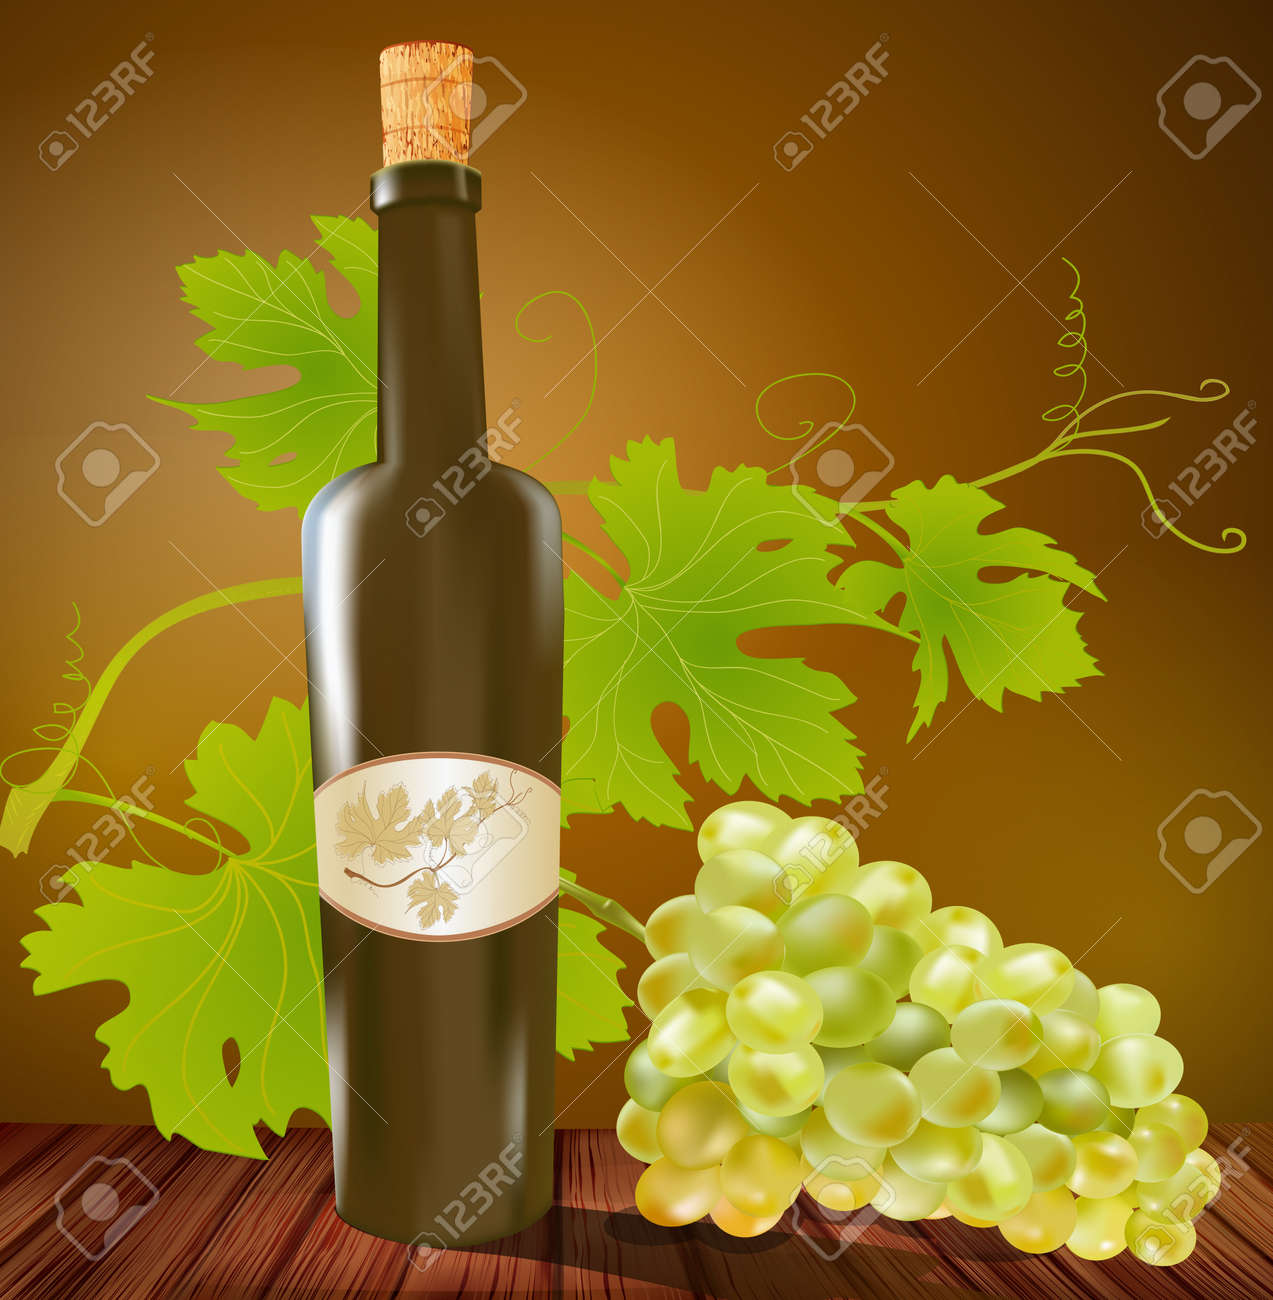 vector wine bottle and grapes on a brown background Stock Vector - 8987548